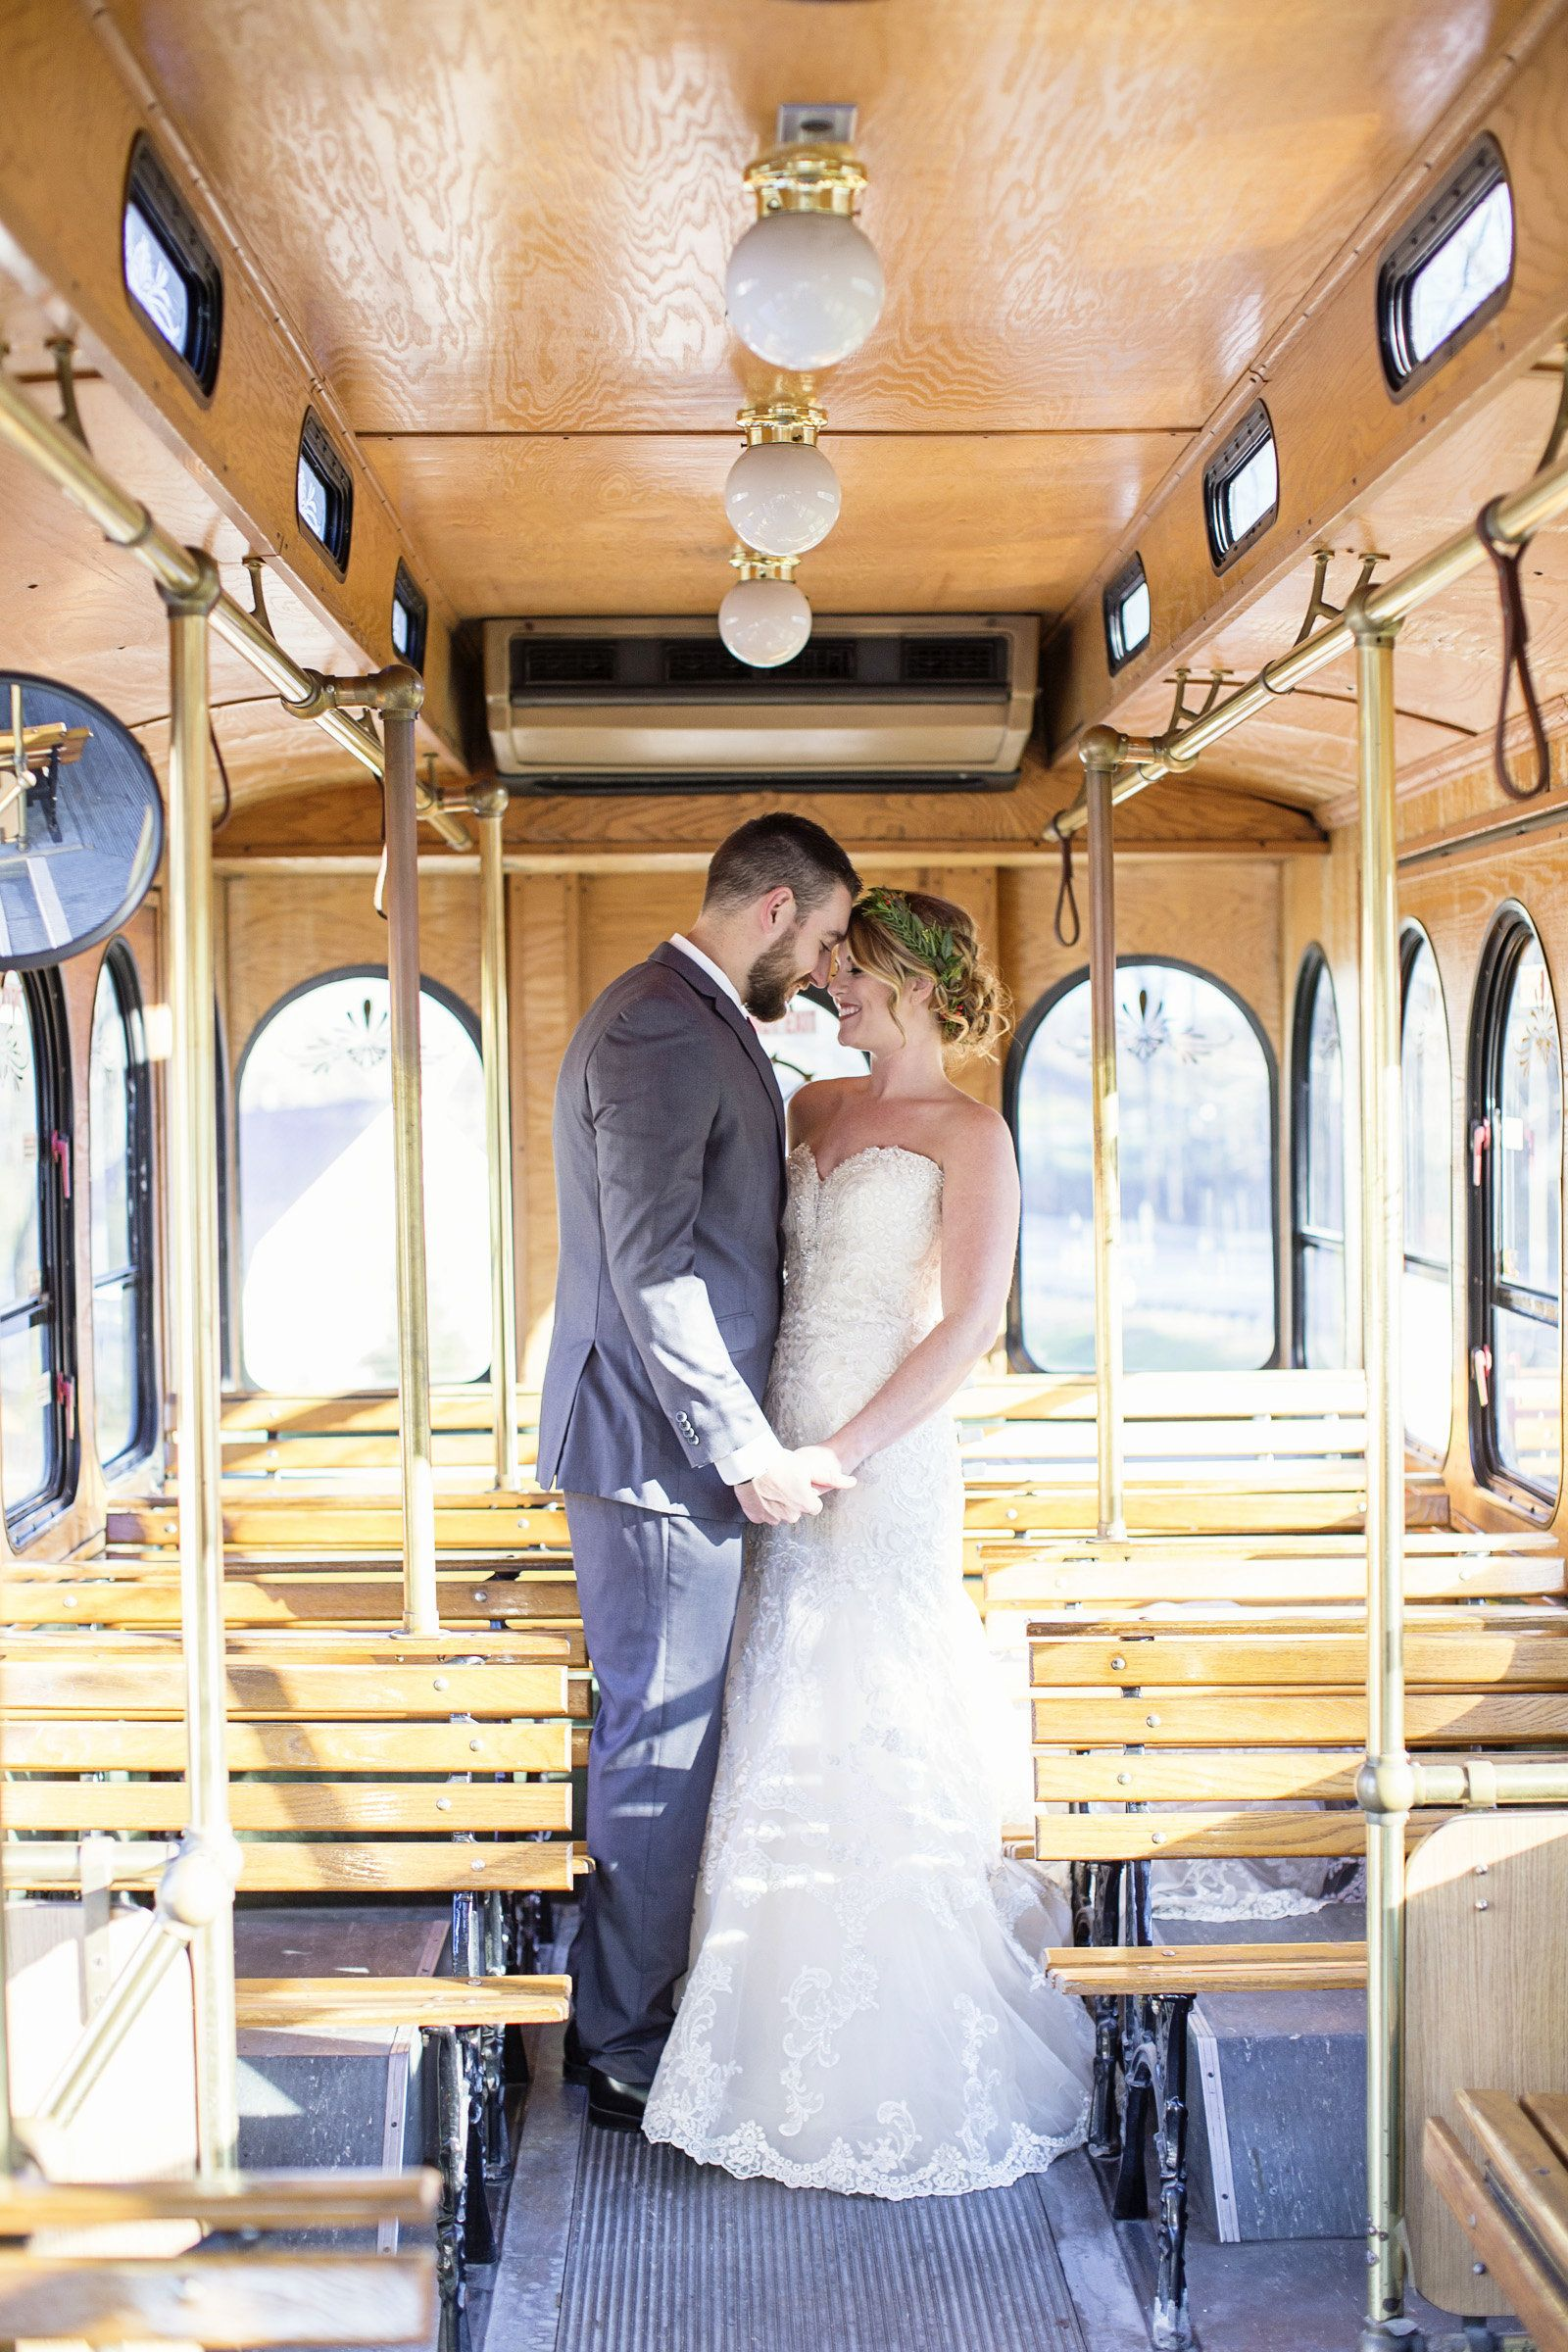 Wedding Bride And Groom Pose In Historic Trolley Bridal Party Transportation Old Fashioned Vintage Vehicles Clic Portraits Black